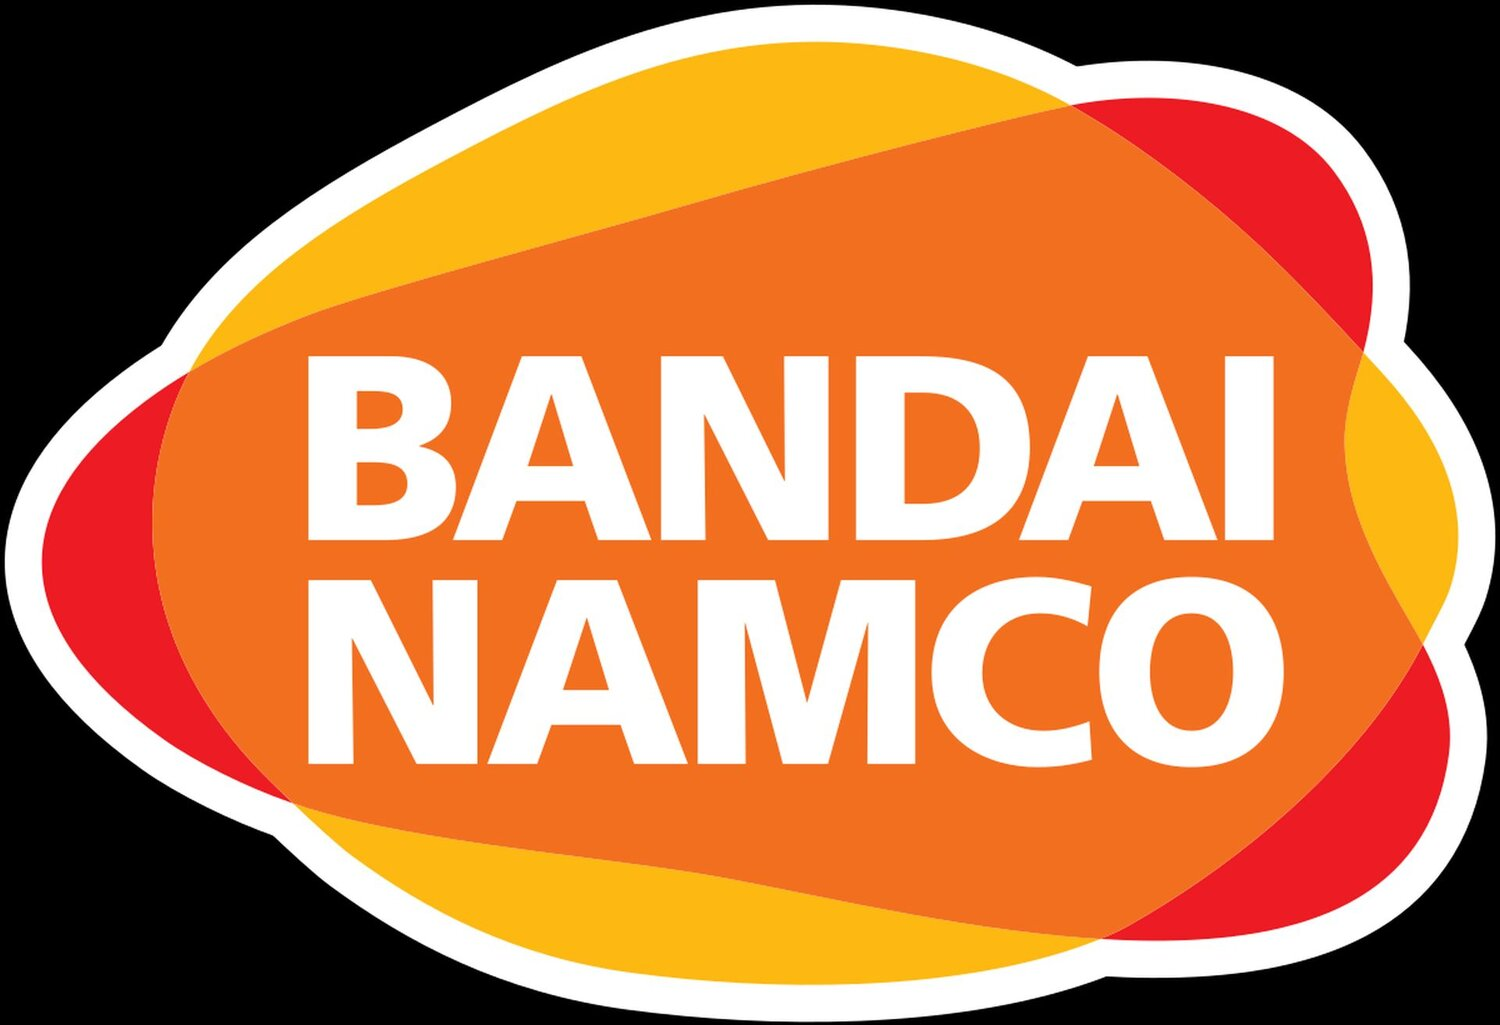 Bandai Namco Announces Play Anime Live Event to Showcase New Game Announcements, Trailers, and More